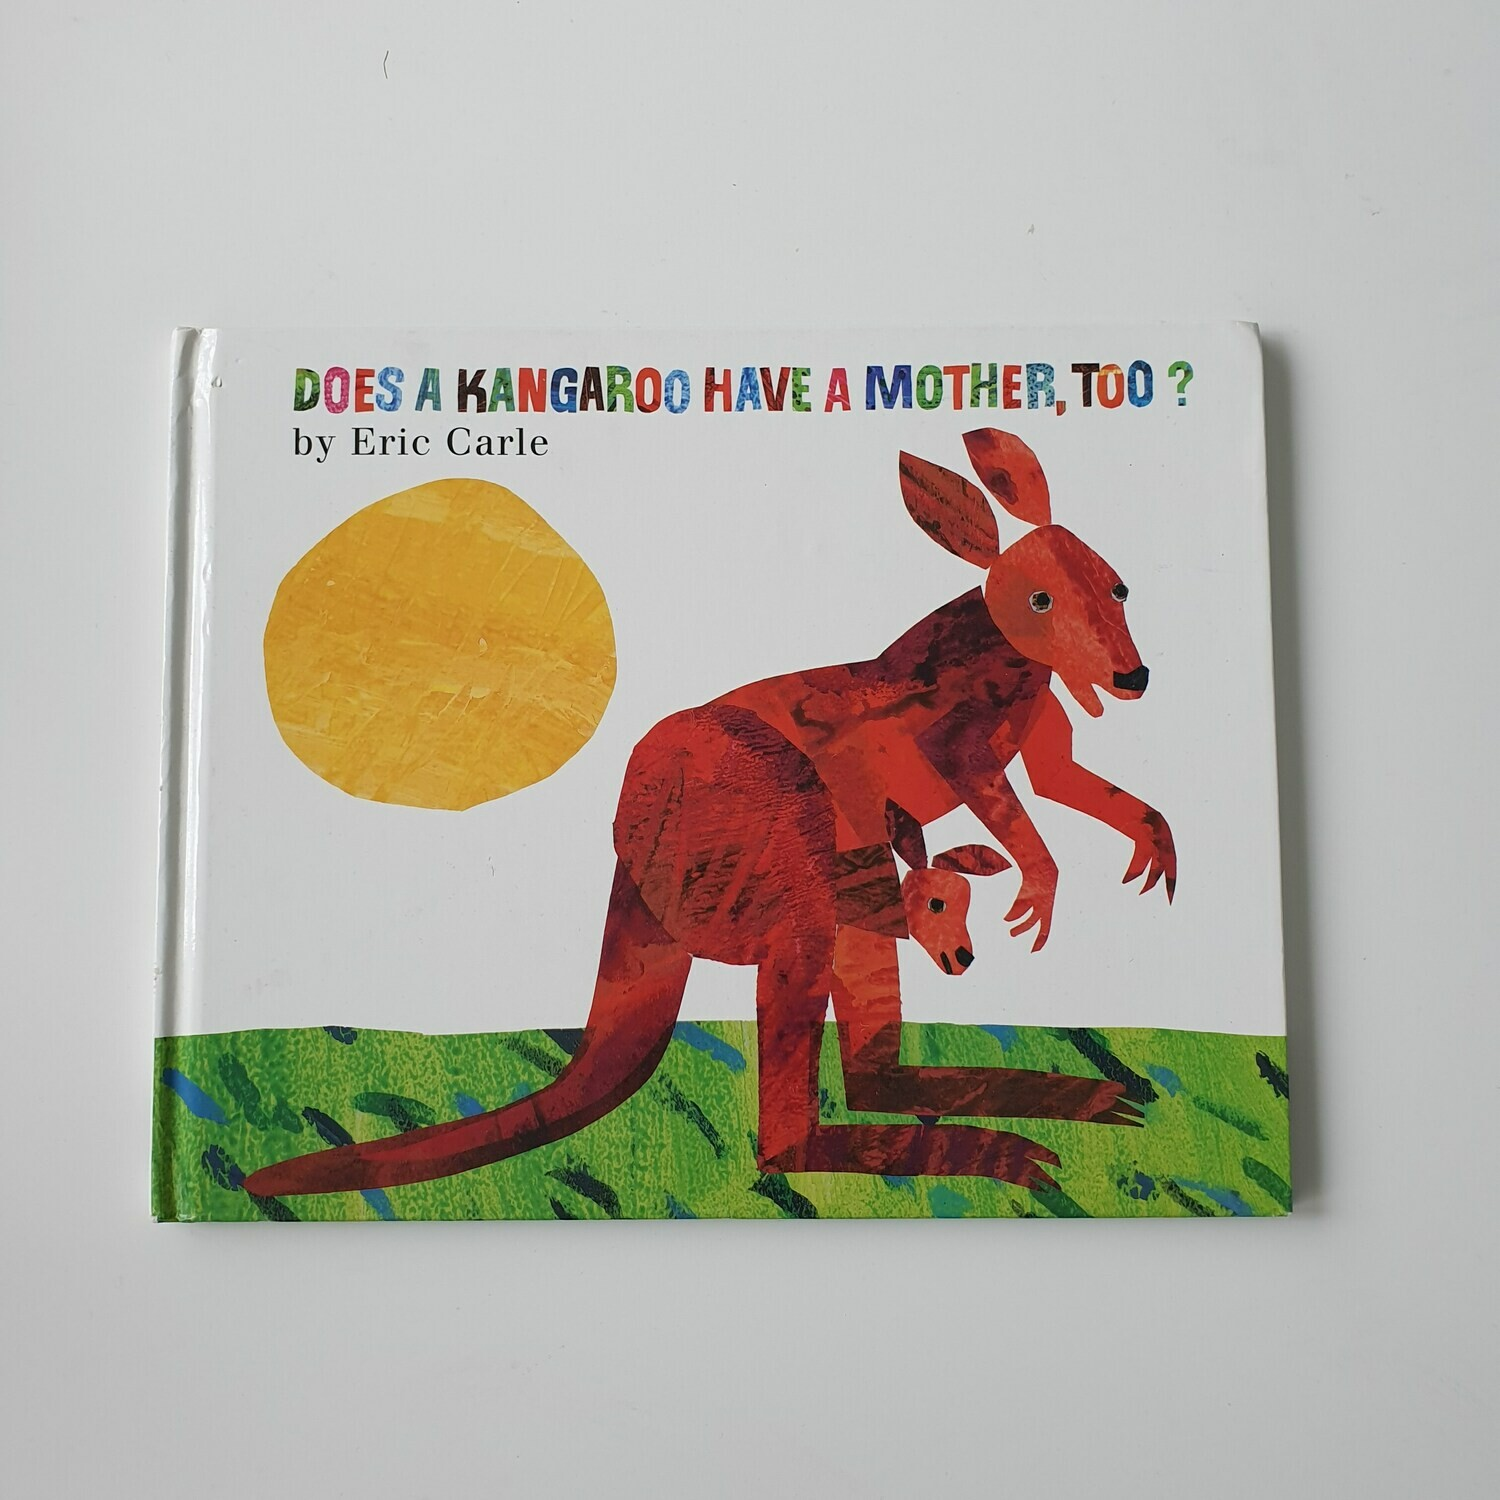 Does a Kangaroo have a mother too? Eric Carle  Notebook